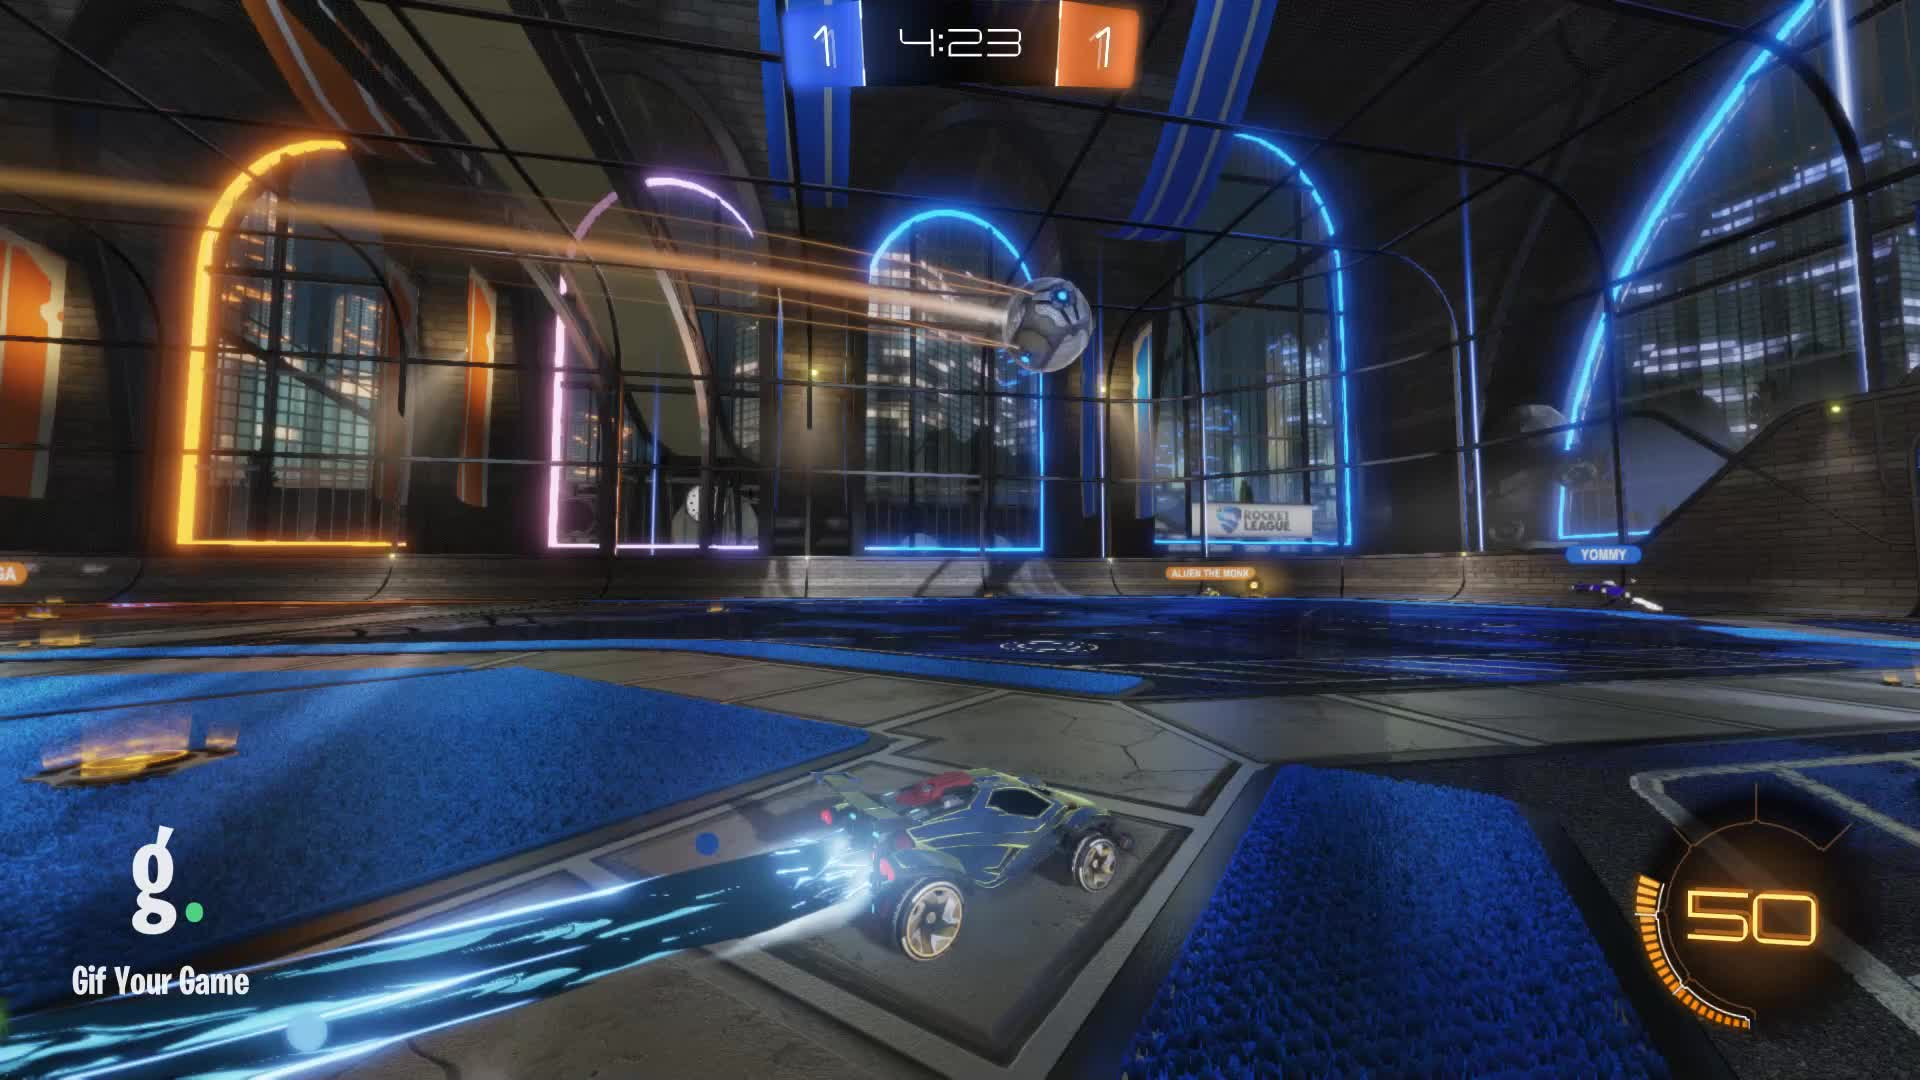 Gif Your Game, GifYourGame, Goal, ItWas...Justified, Rocket League, RocketLeague, Goal 3: ItWas...Justified GIFs